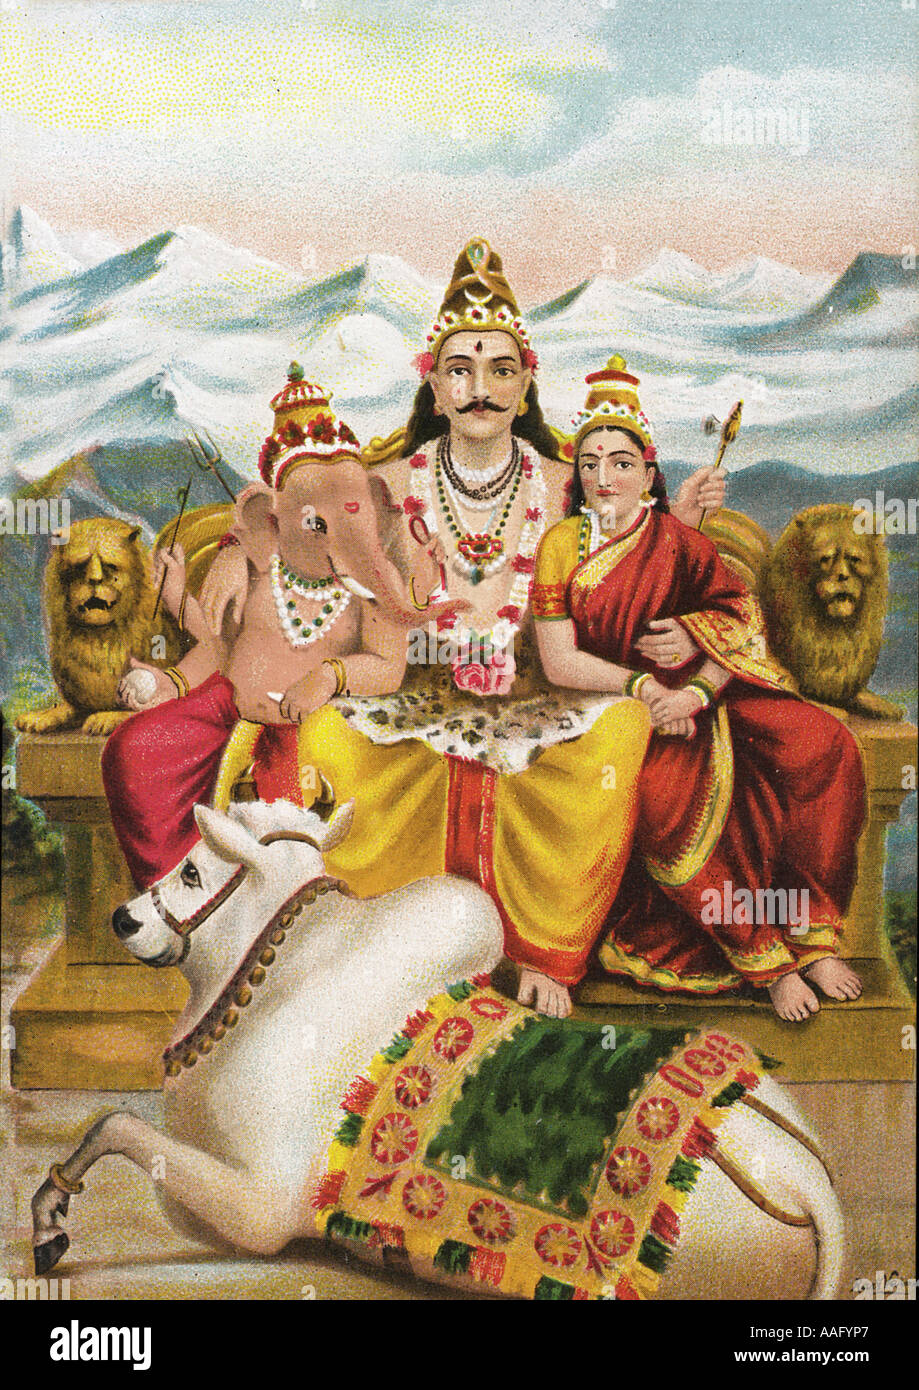 DDR78509 Lord Shankar Shiva with his son Ganesh and wife Parvati with his vehicle Nandi - Stock Image